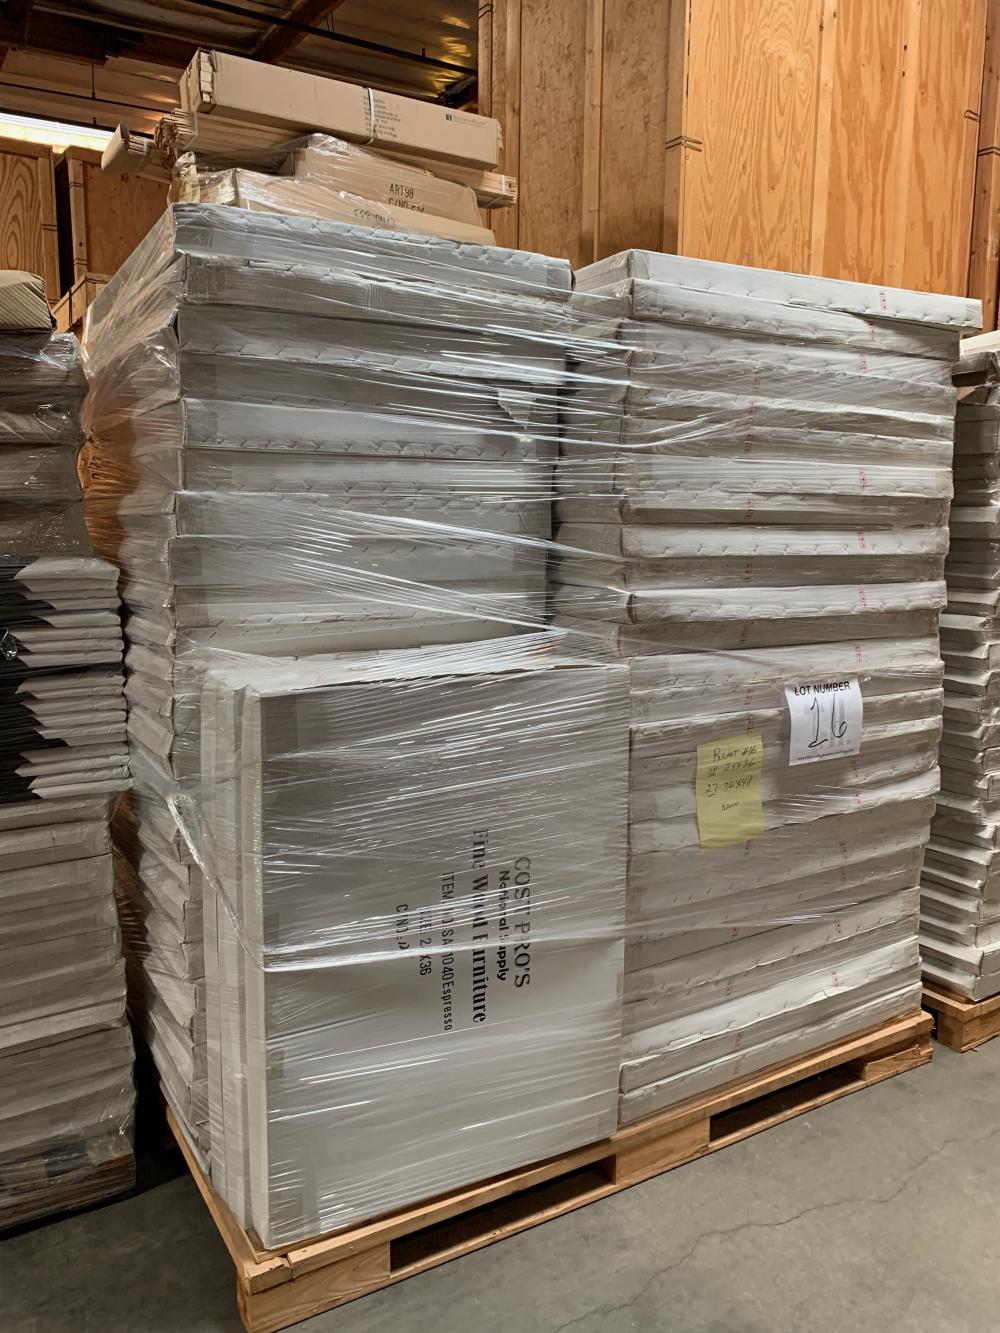 Pallet of Picture Frames 16